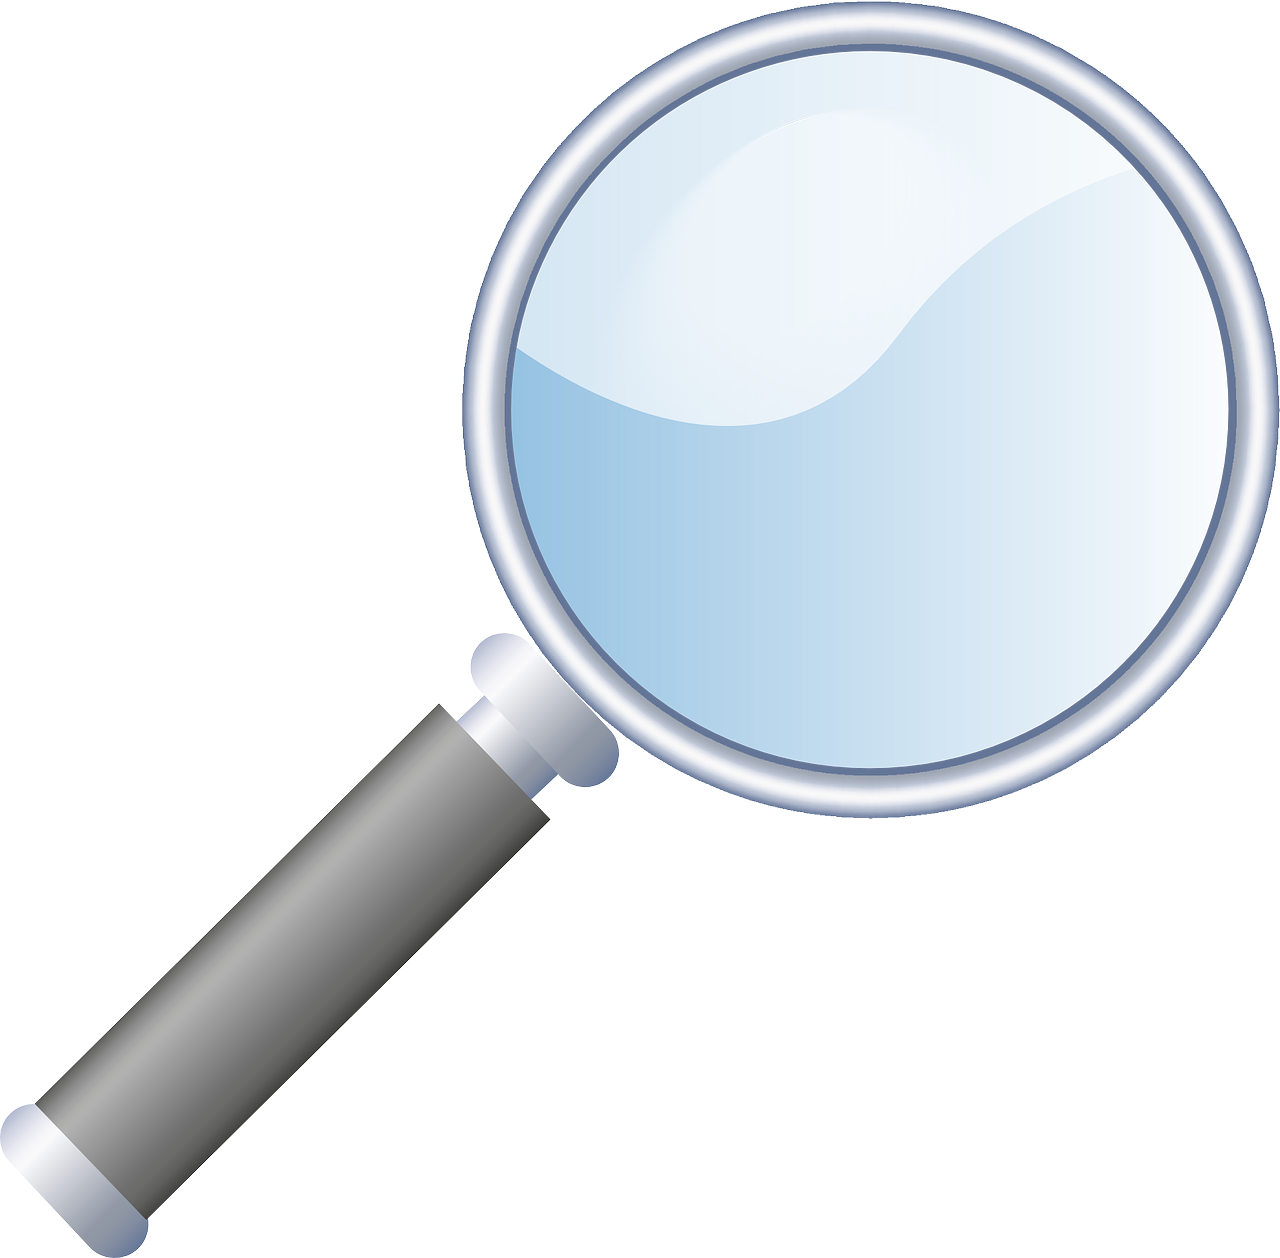 Magnifying Glass Magnifier - Free vector graphic on Pixabay